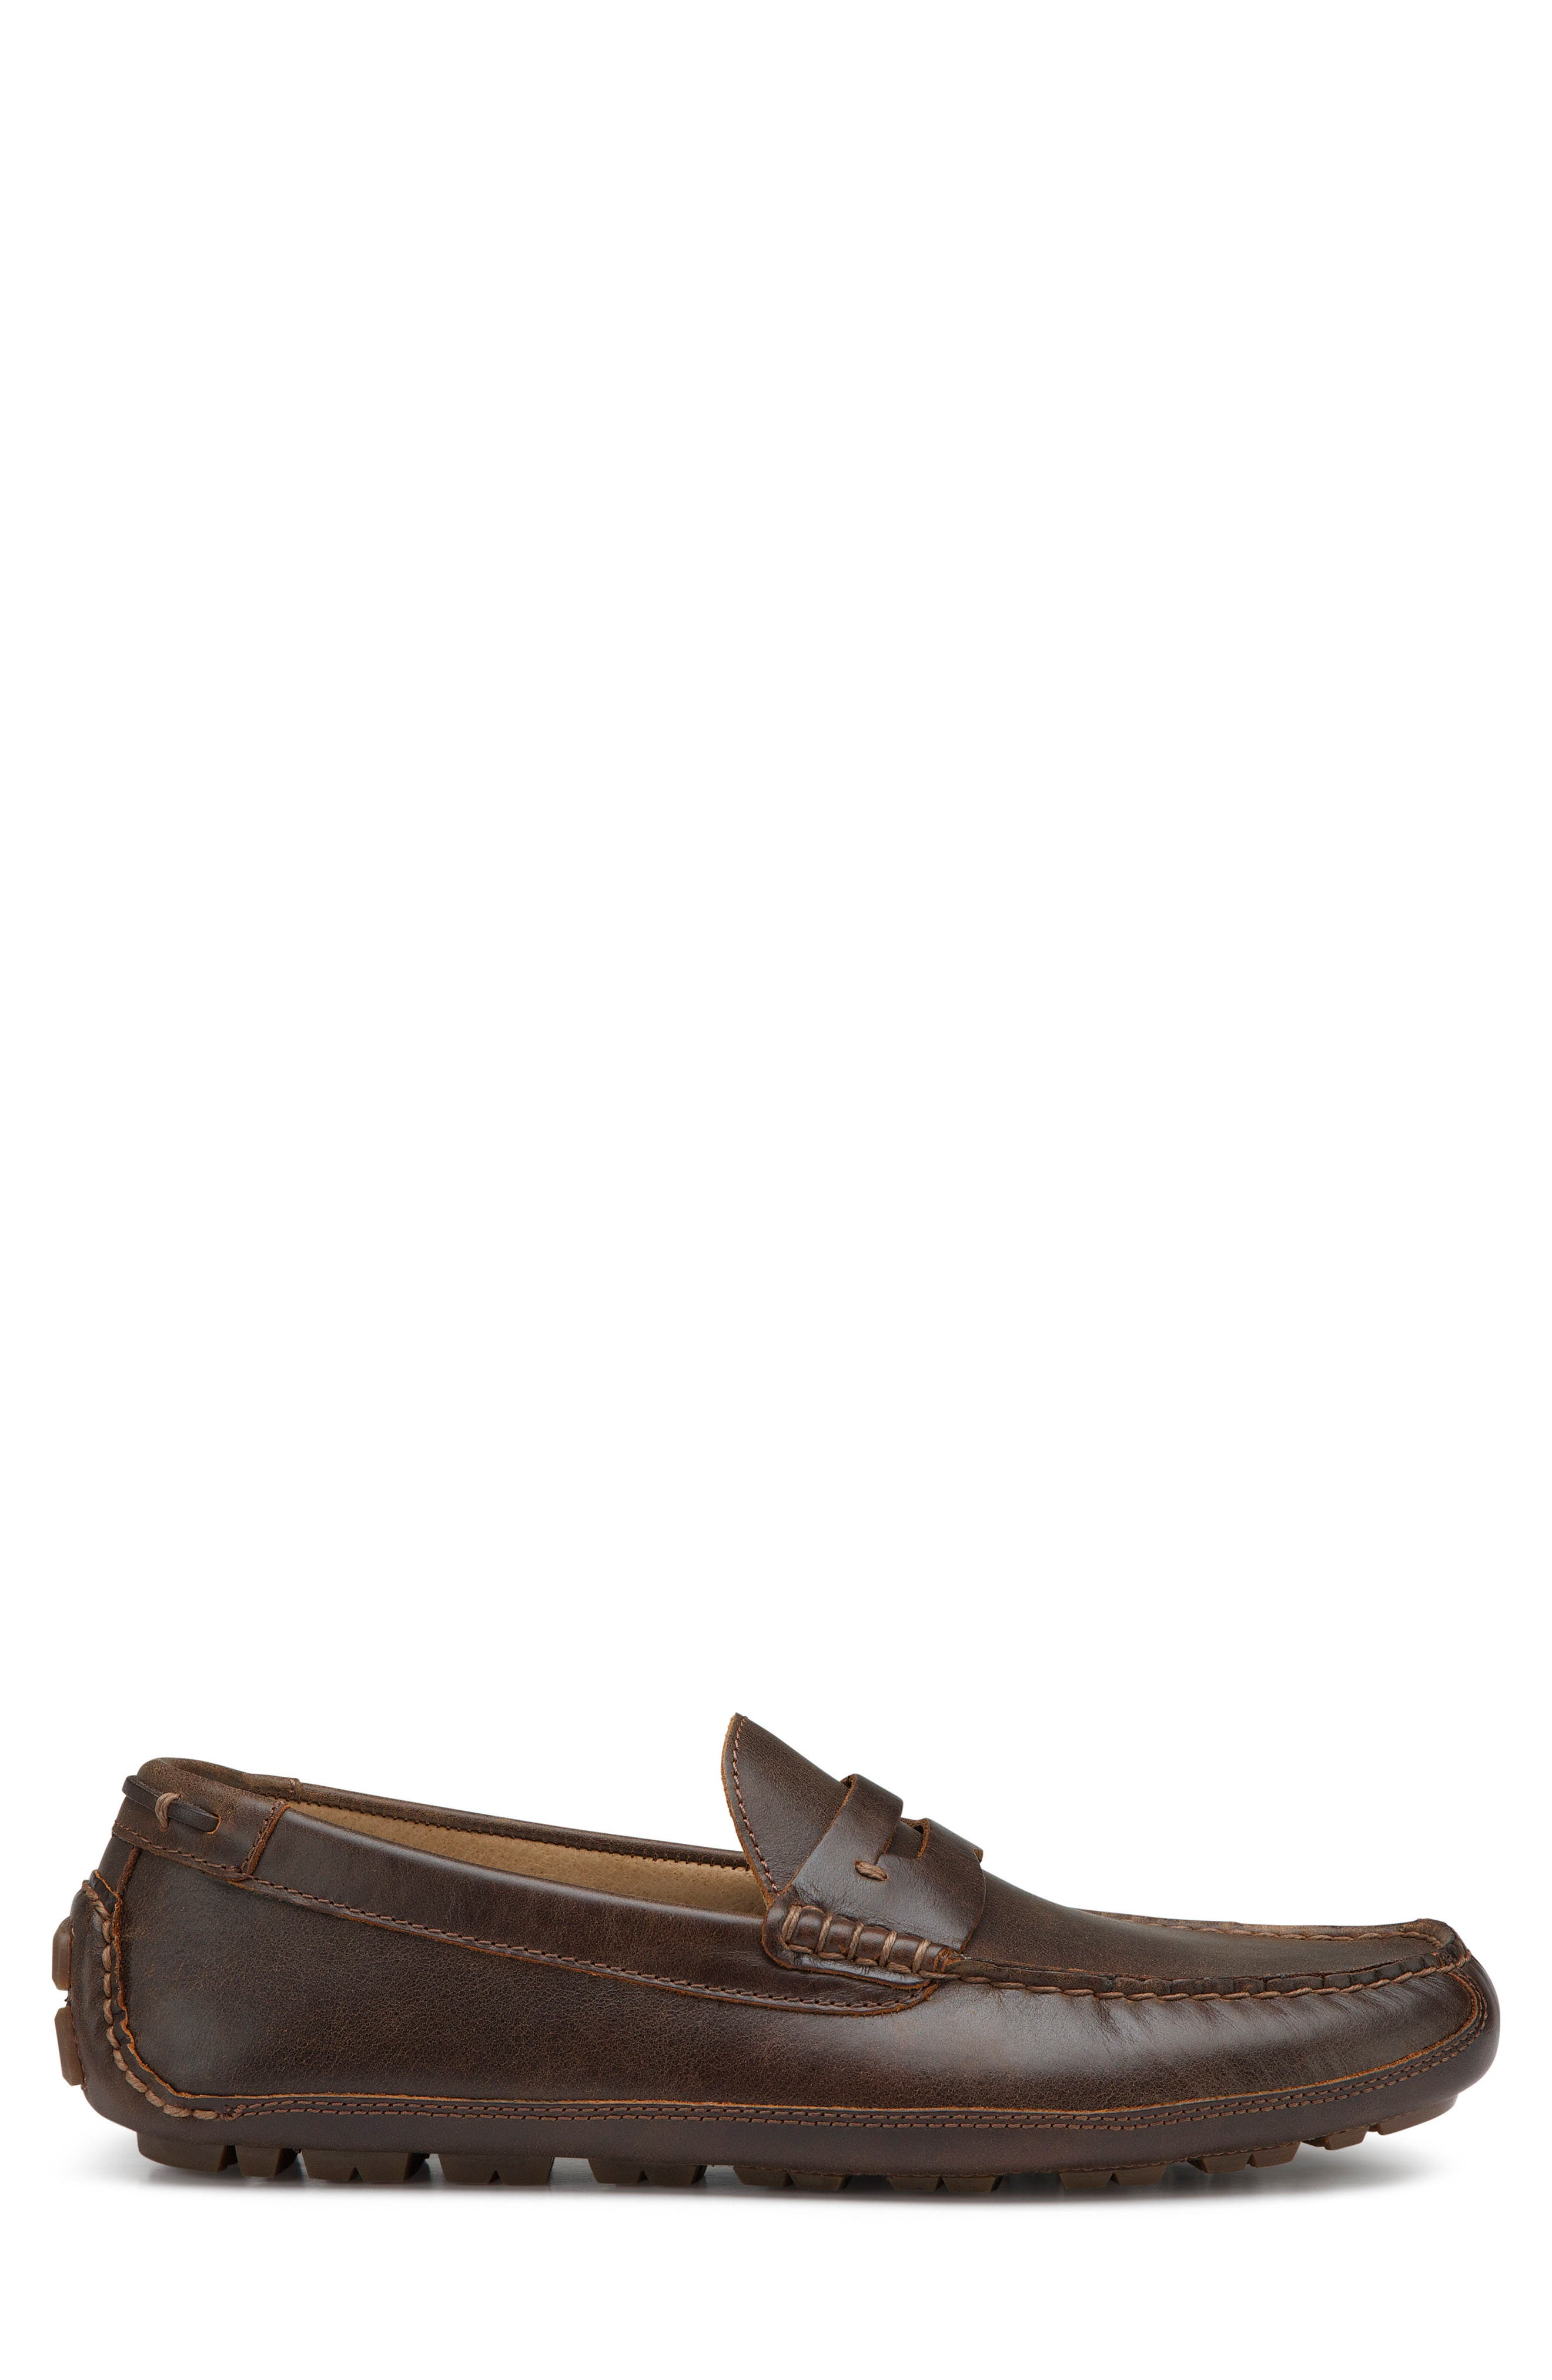 Dawson Water Resistant Driving Loafer,                             Alternate thumbnail 3, color,                             DARK BROWN LEATHER